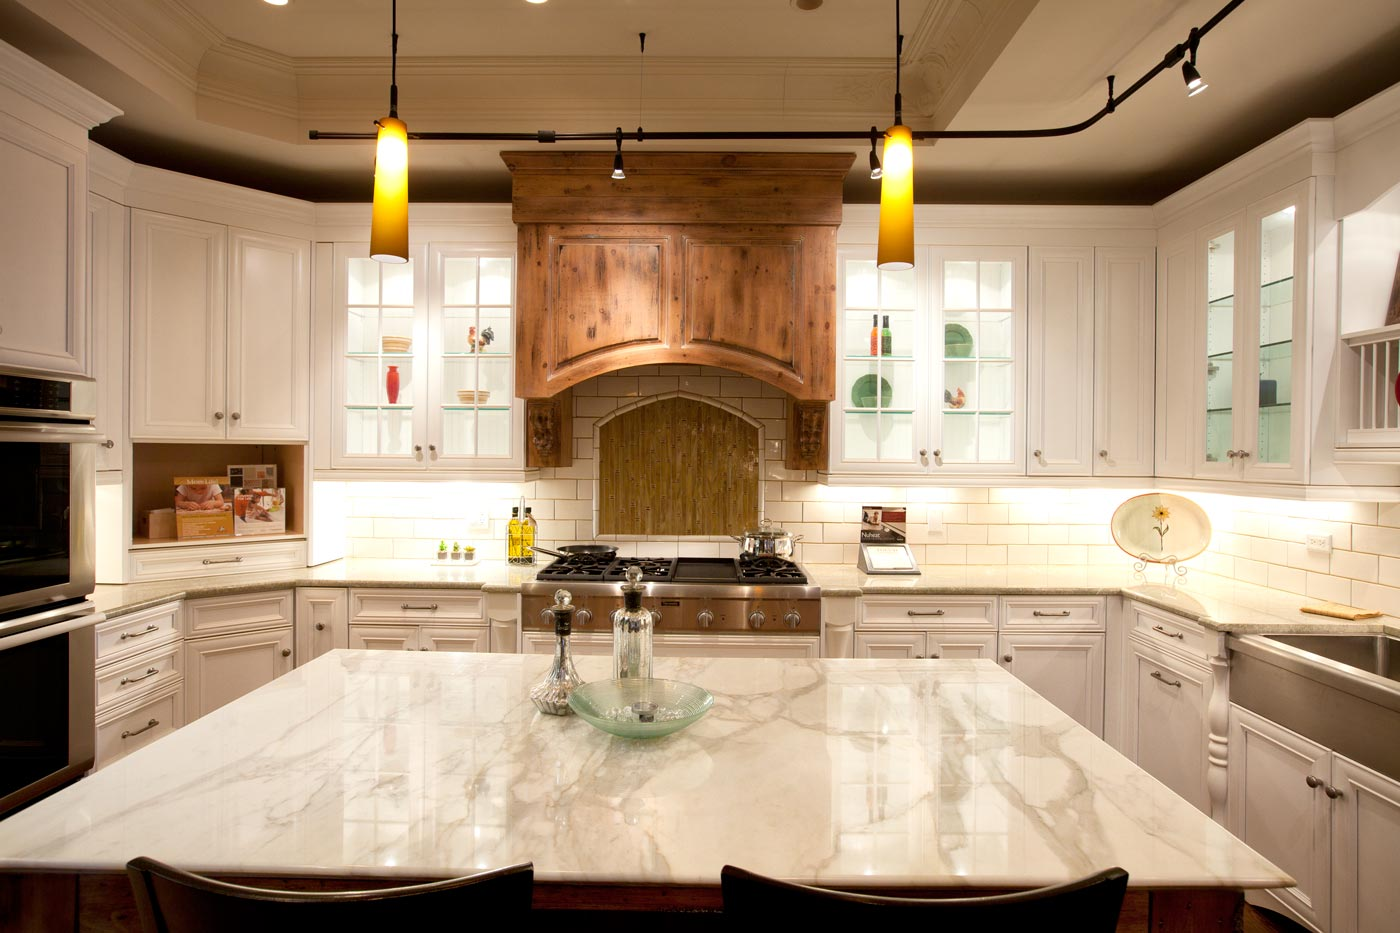 Stone Countertops Chicago Marble Countertop Cleaning And Care Mr Floor Companies